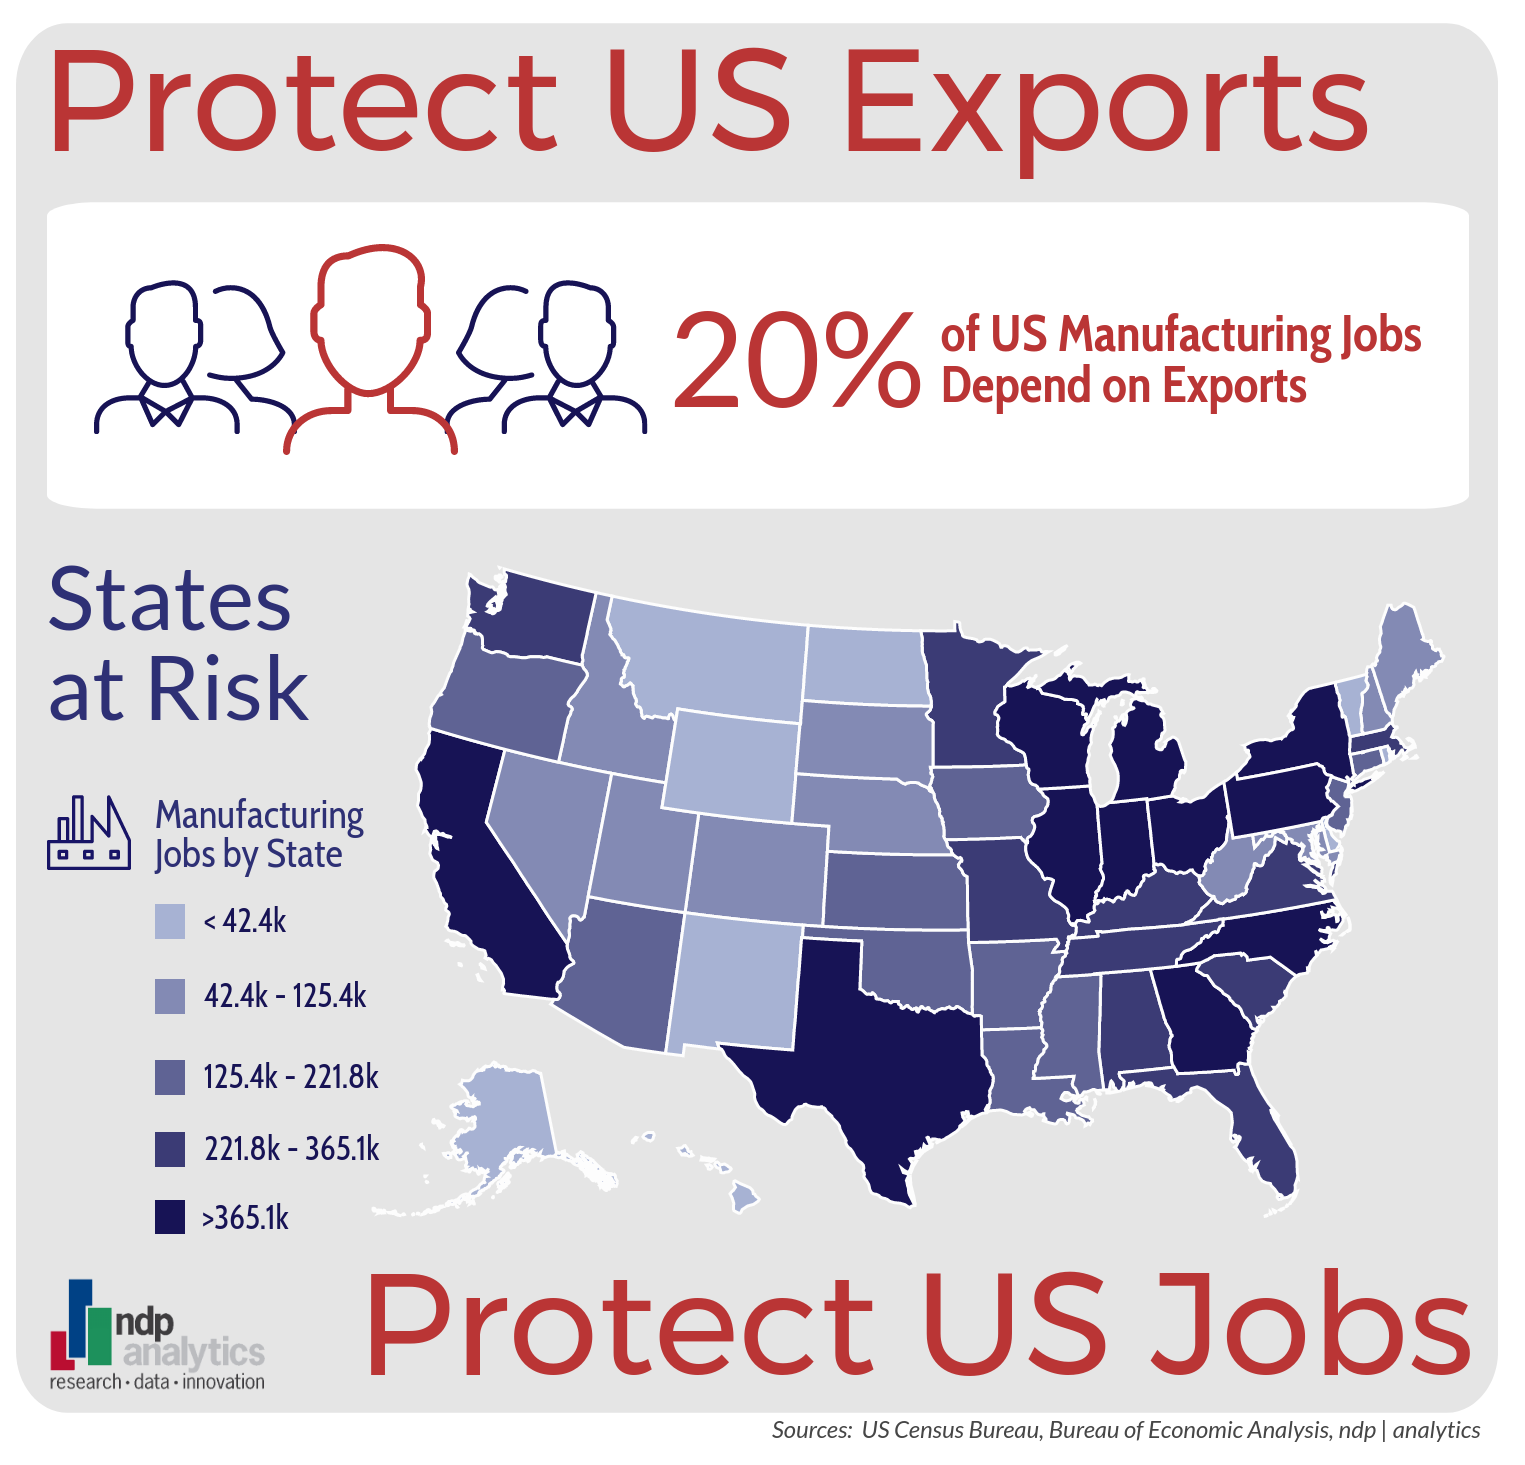 Exports Fuel the Economy and Create Jobs